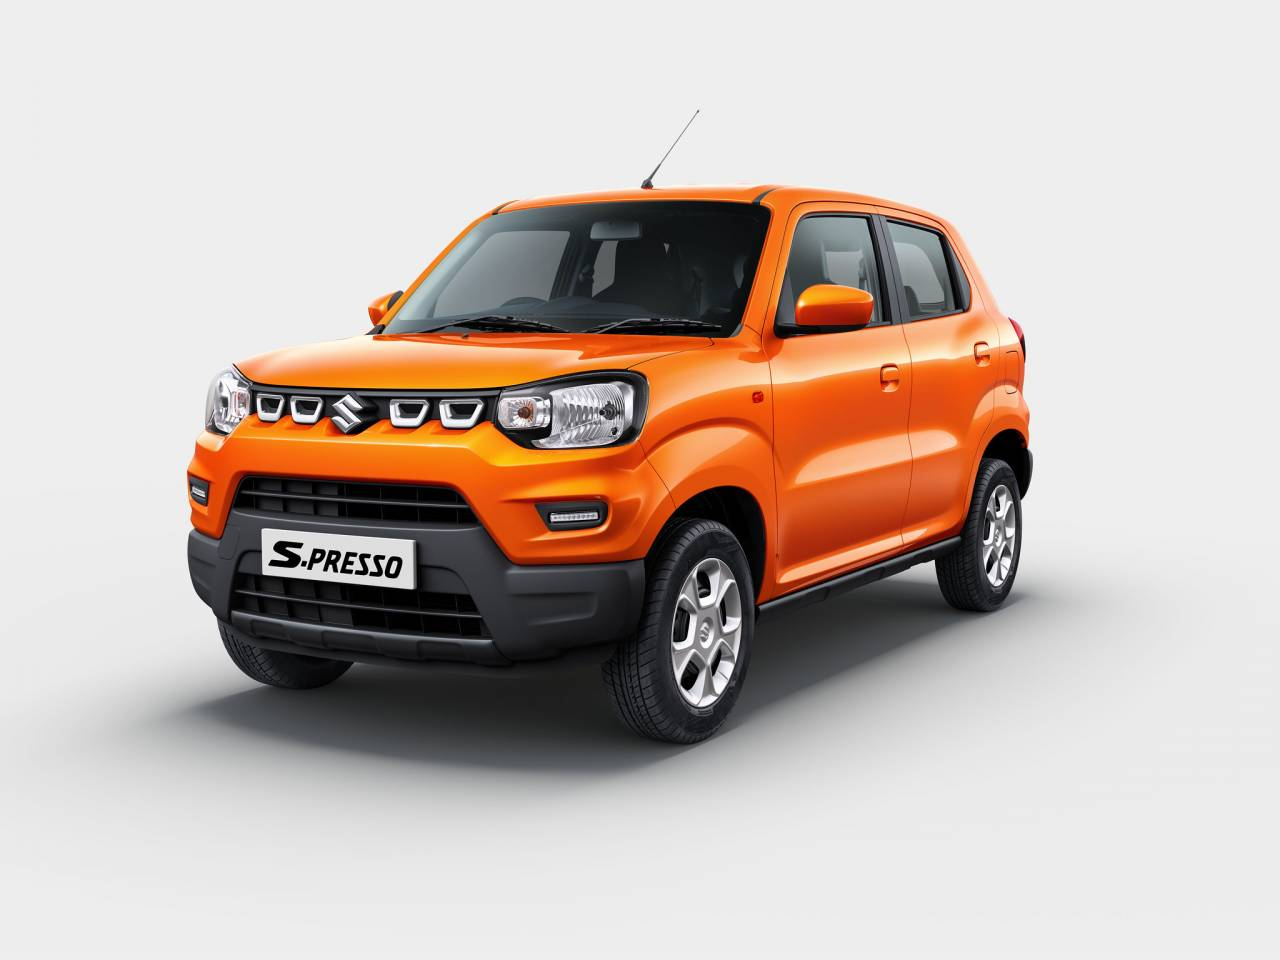 The S-Presso is priced at Rs 3.69 lakh (ex-showroom) for the base variant. The AMT base is priced at Rs 4.68 lakh. (Image: Maruti Suzuki)